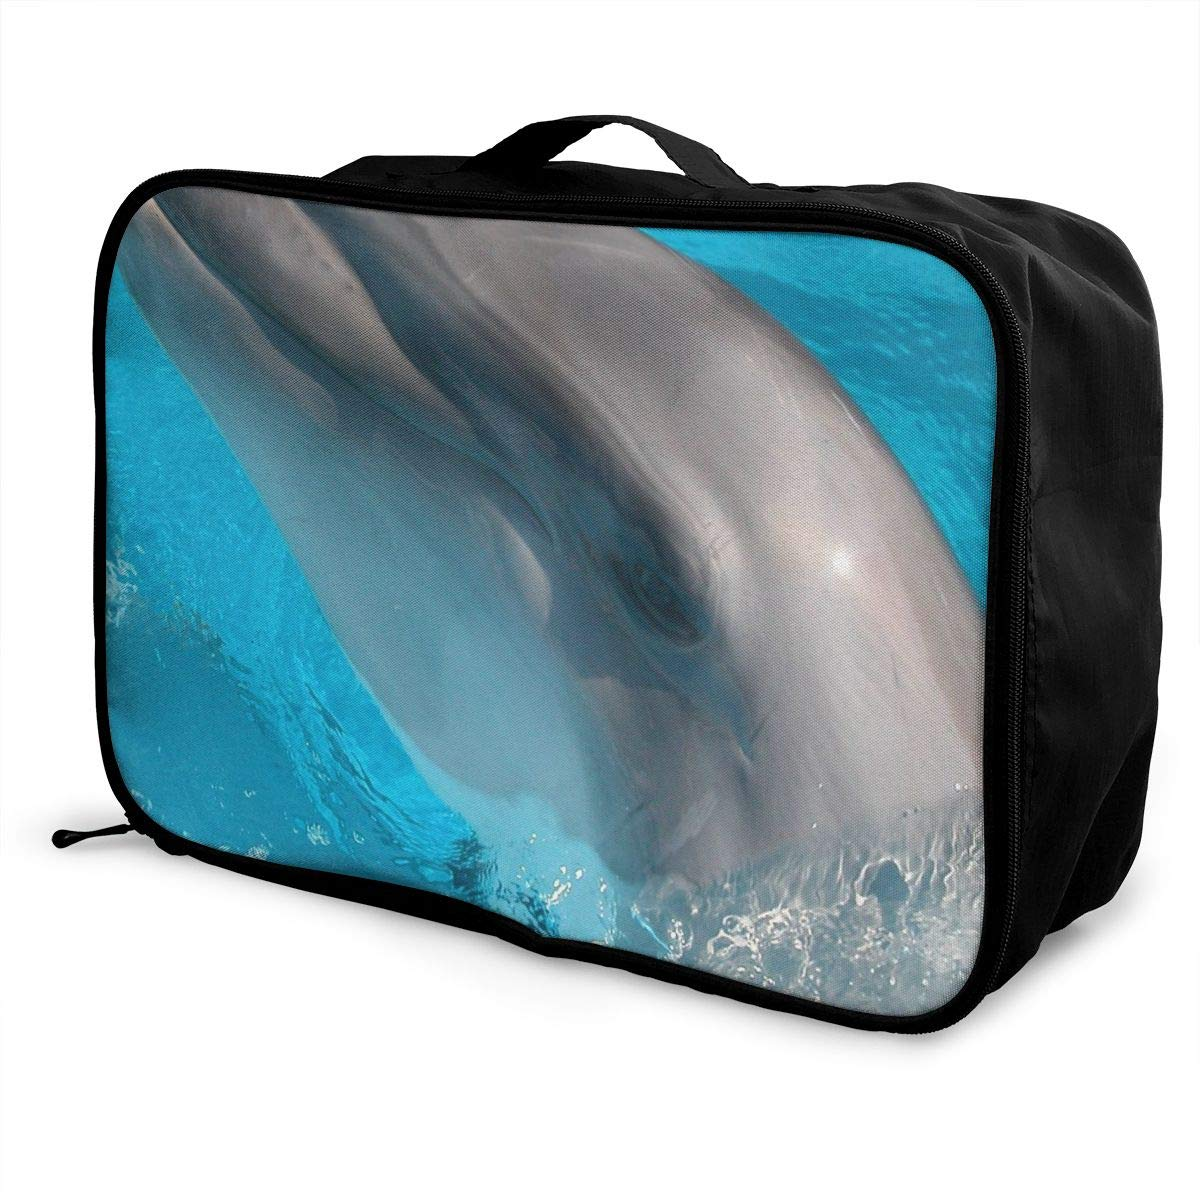 Lightweight Large Capacity Portable Luggage Bag Cute Animals Travel Waterproof Foldable Storage Carry Tote Bag